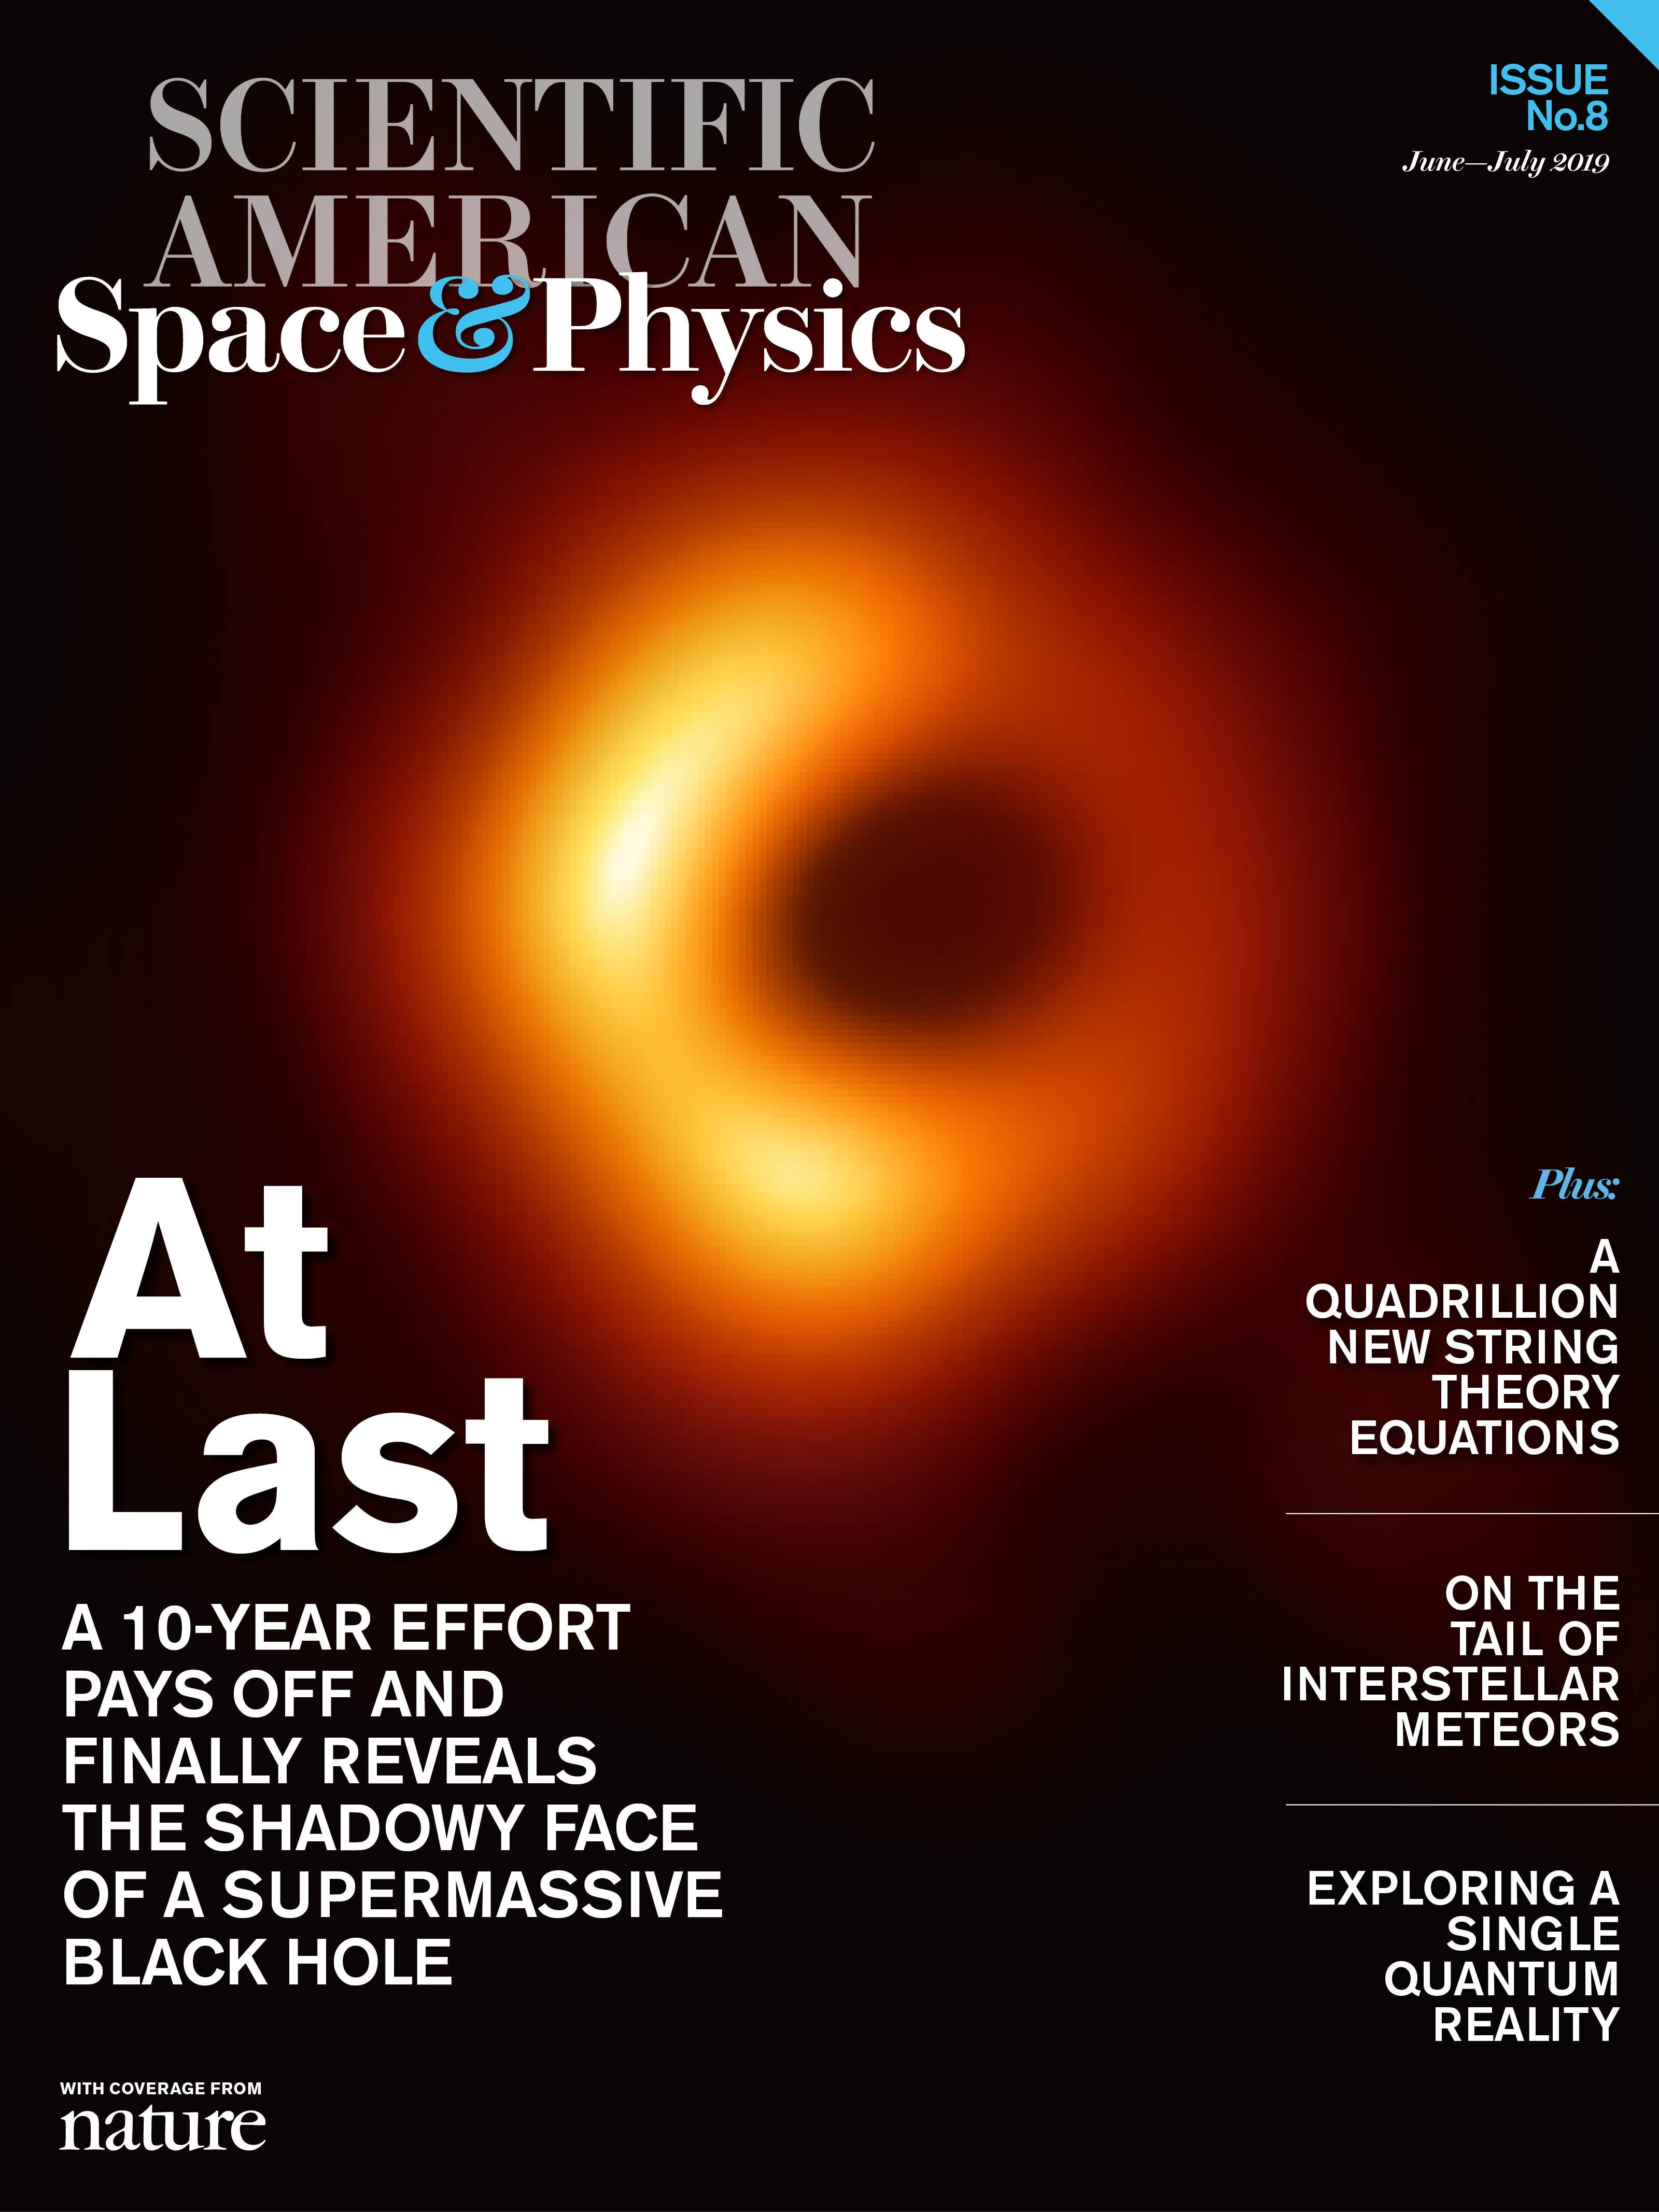 Scientific American Space & Physics, Volume 2, Issue 3